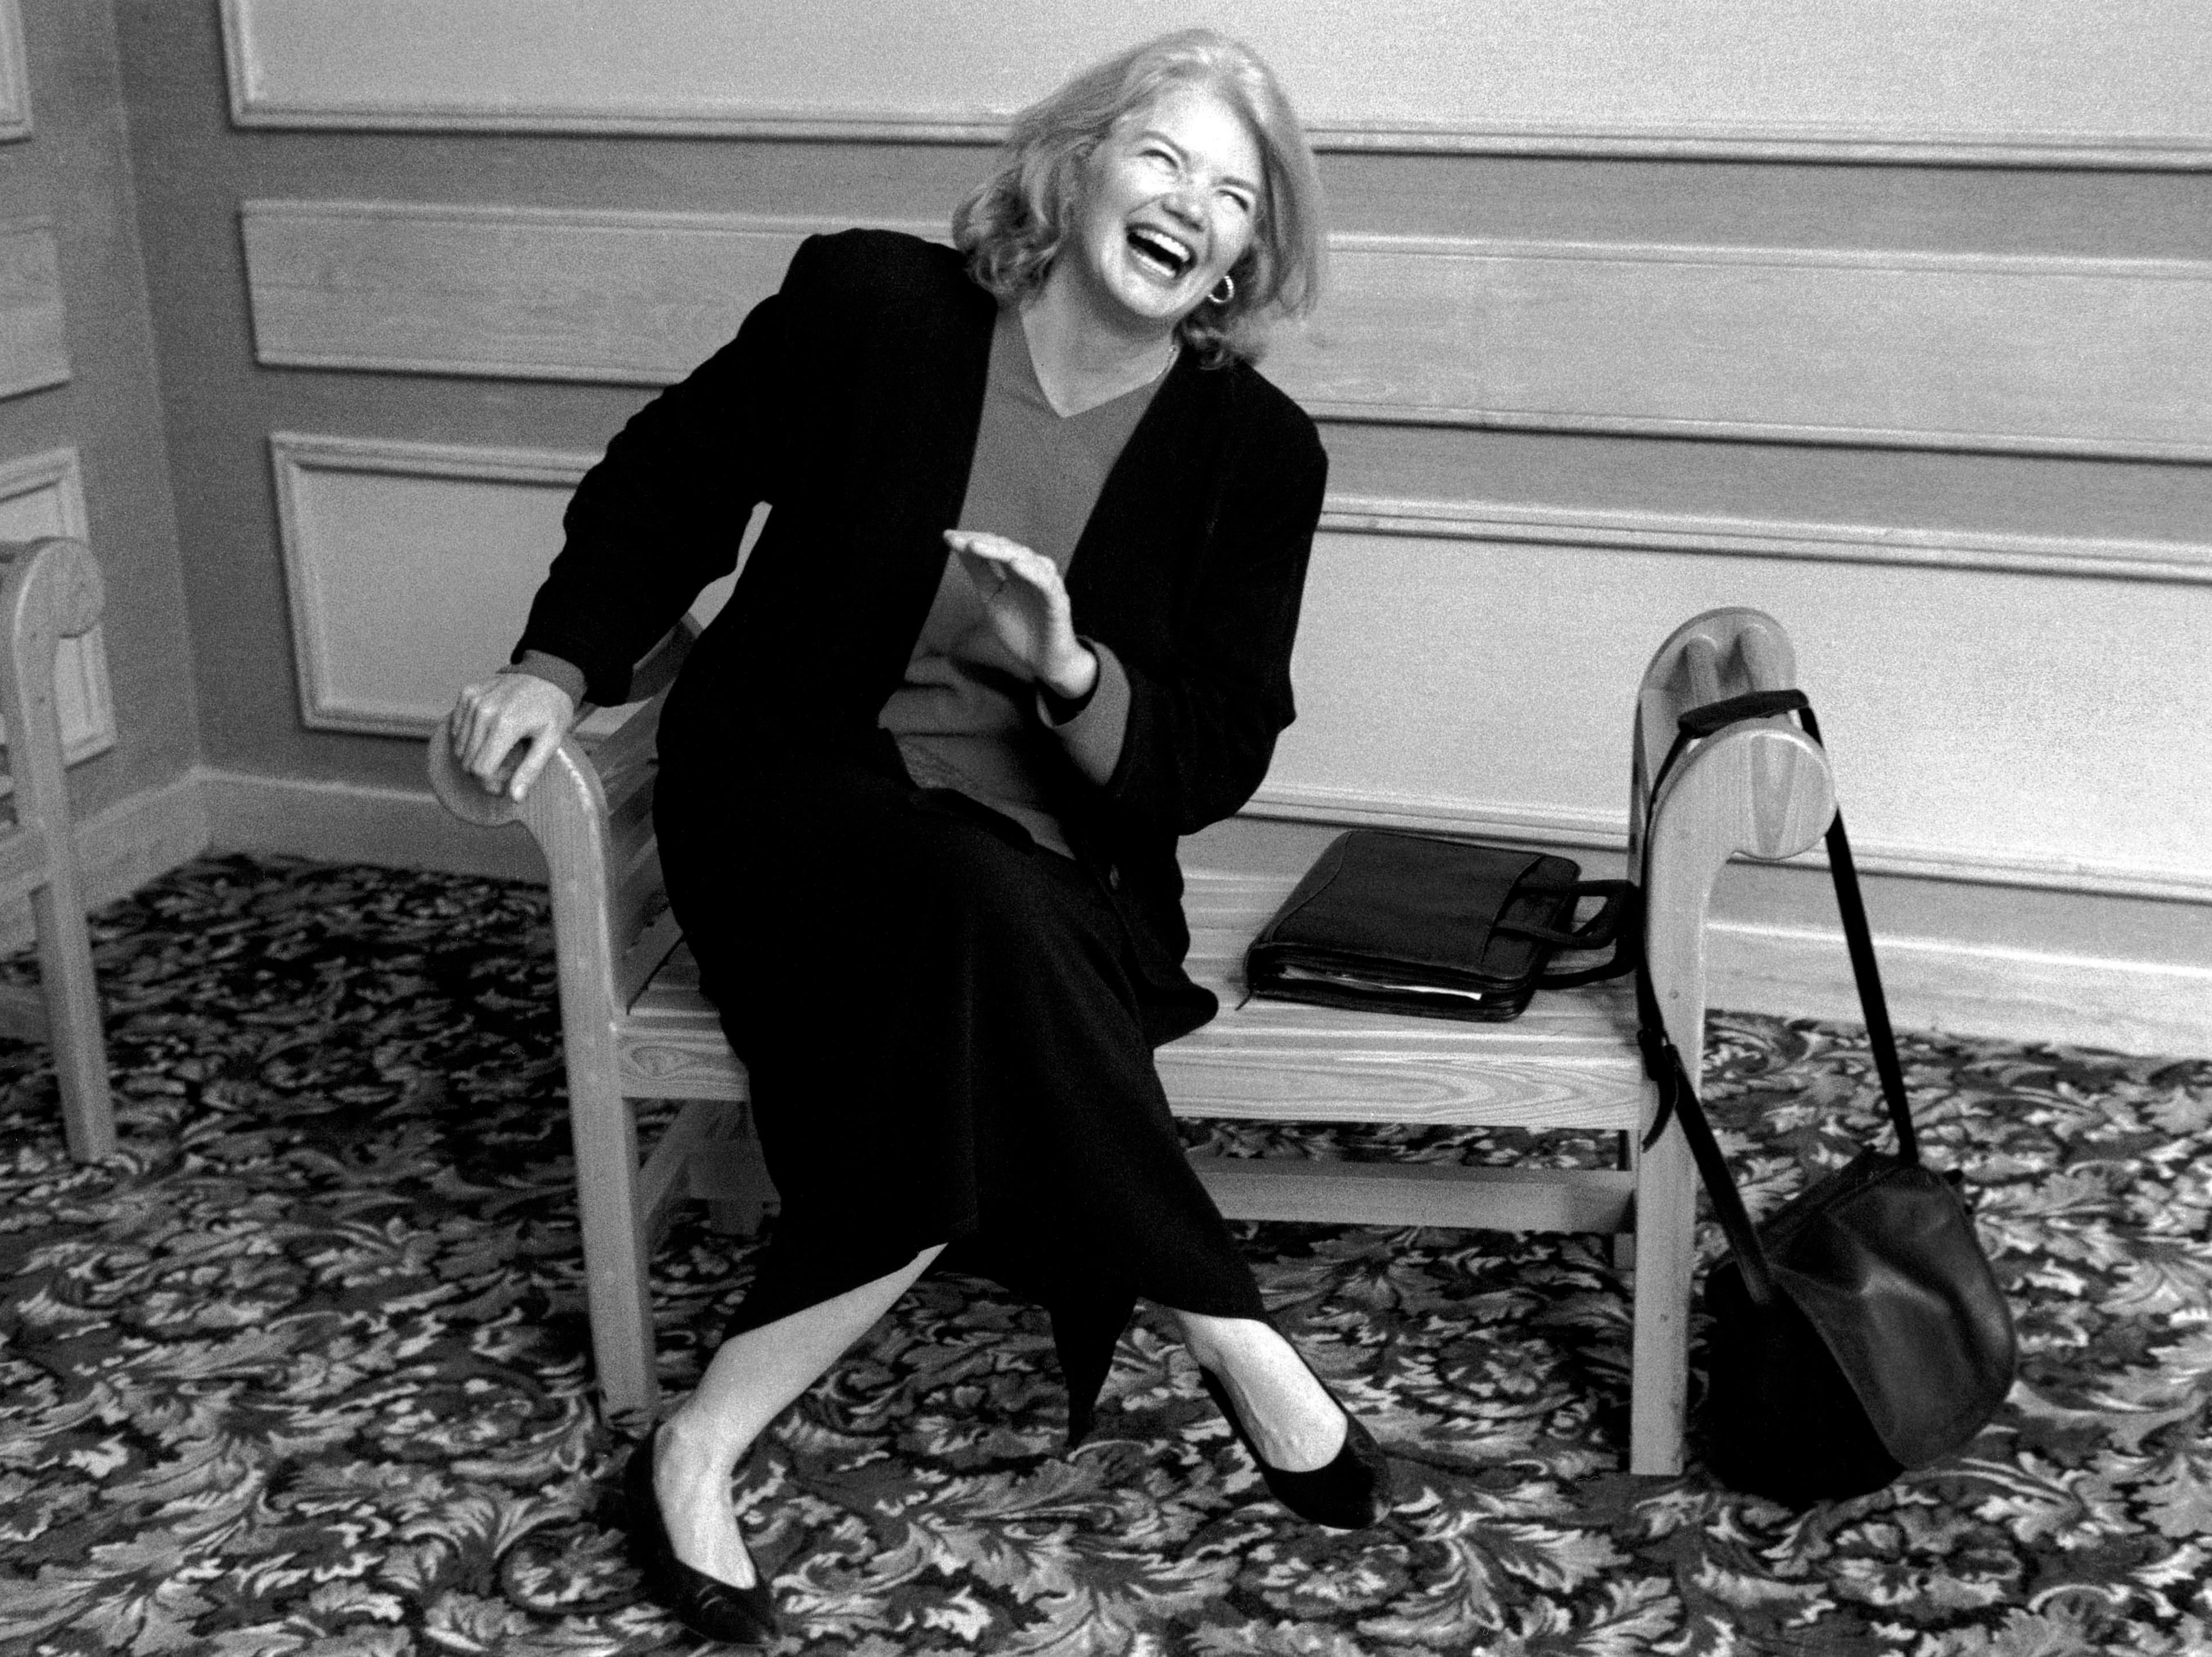 The late opinion journalist Molly Ivins, a syndicated columnist and public speaker, is the subject of the new documentary film Raise Hell. Photo: Robert Bedell/Magnolia Pictures